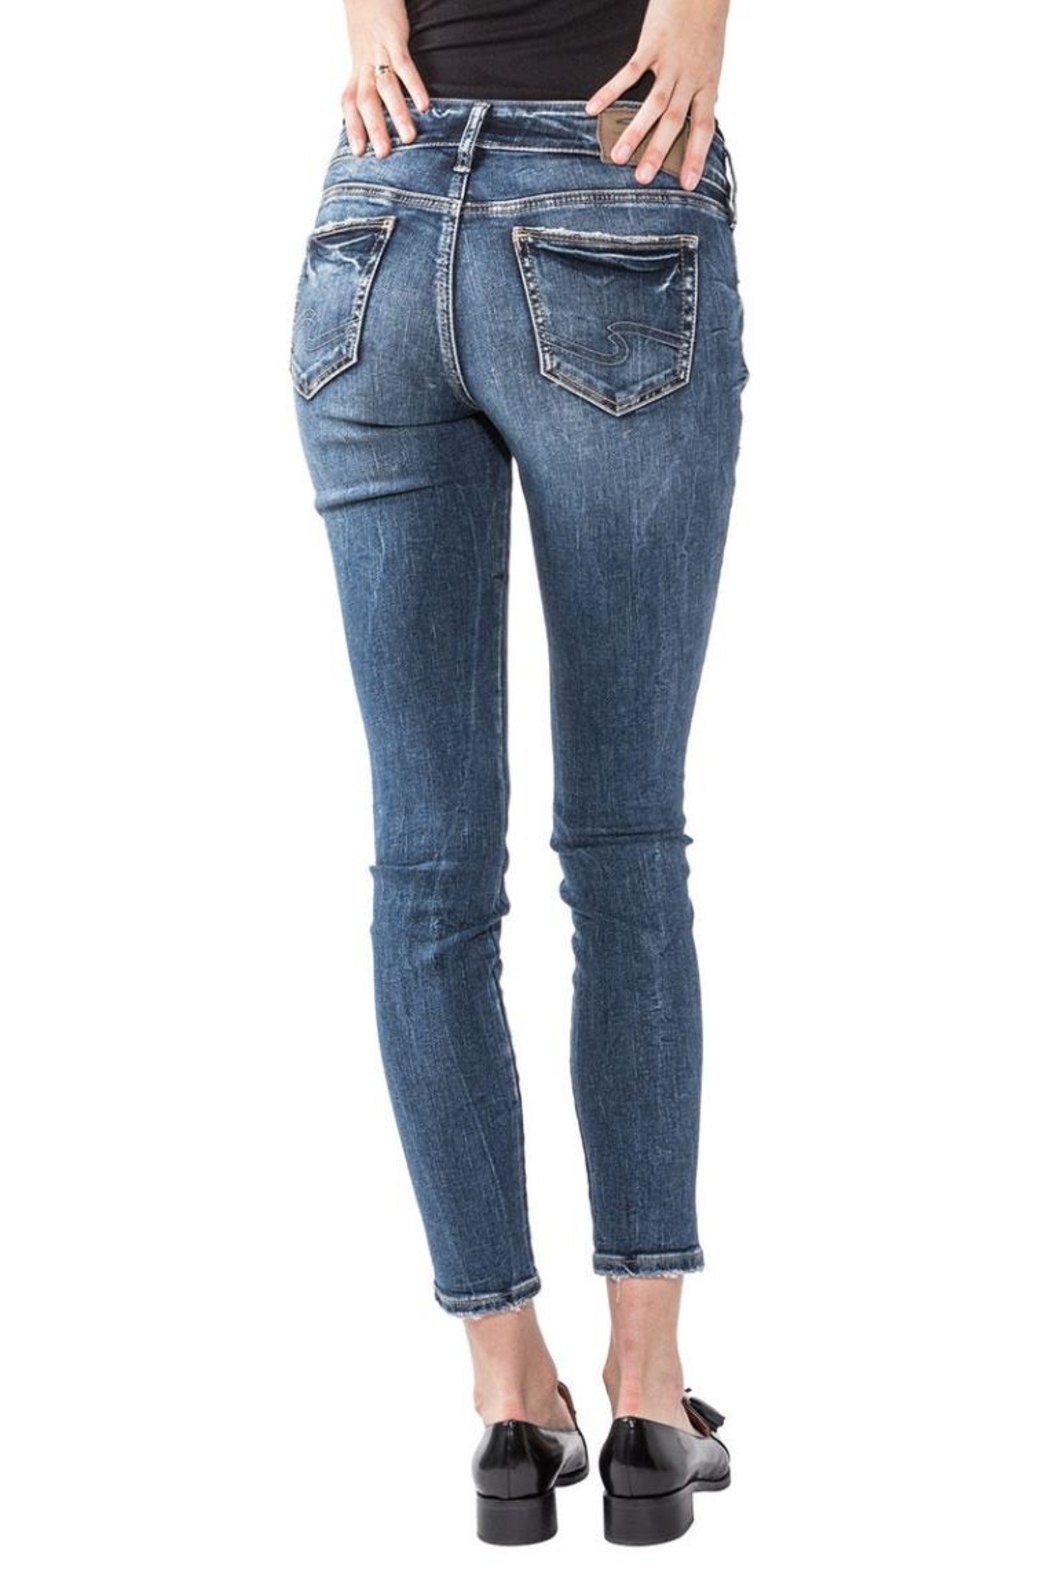 Silver Jeans Co. Elyse Embroidery Skinny - Front Full Image